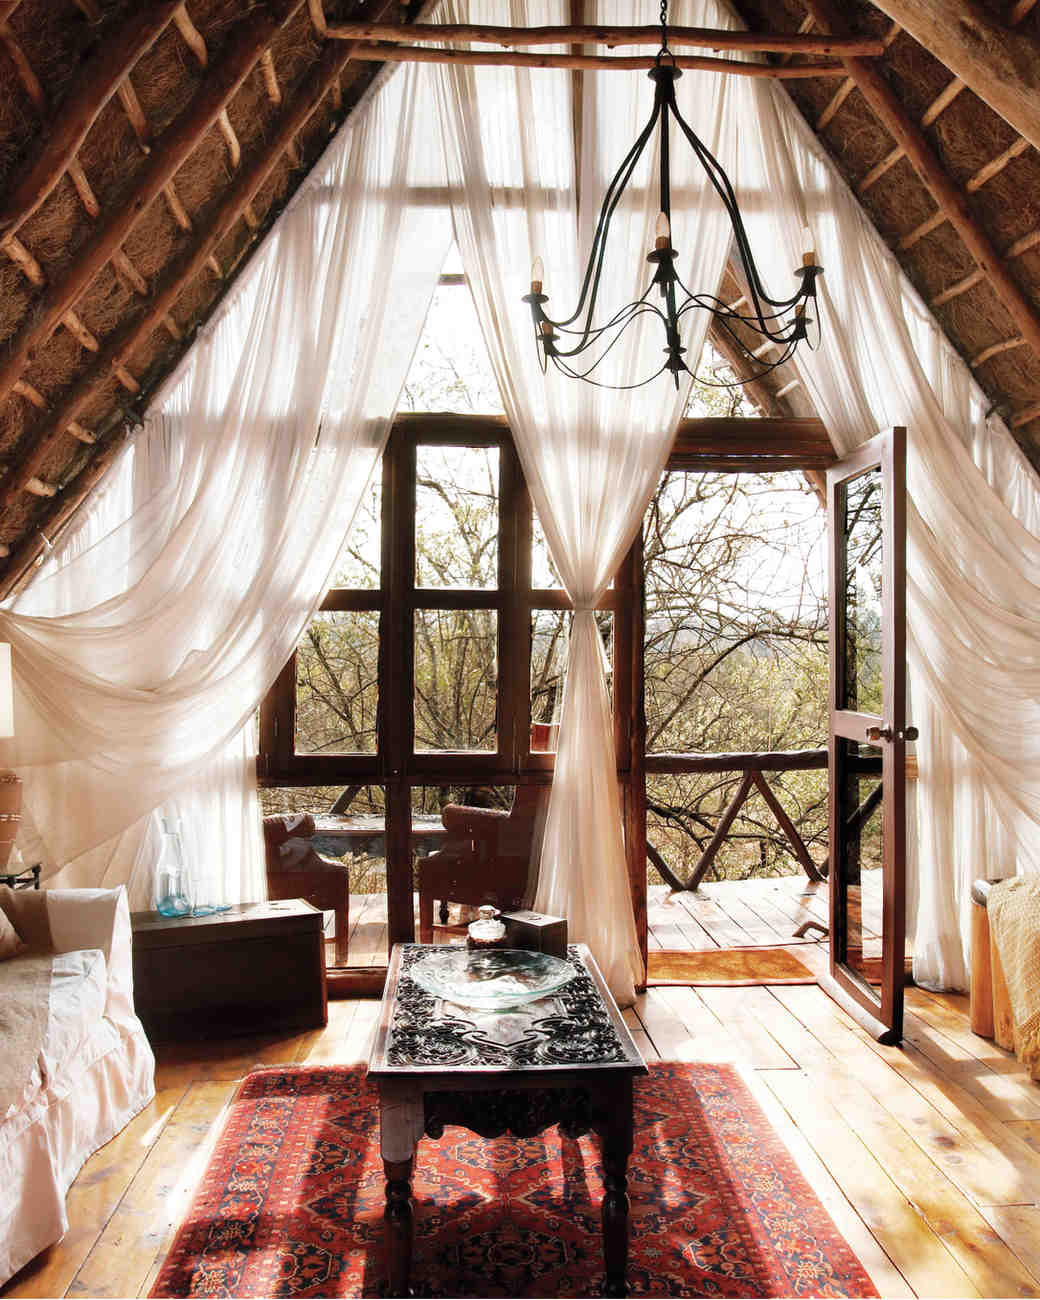 Exotic Tree Houses Exotic Honeymoon Stays For An Unforgettable Honeymoon Adventure